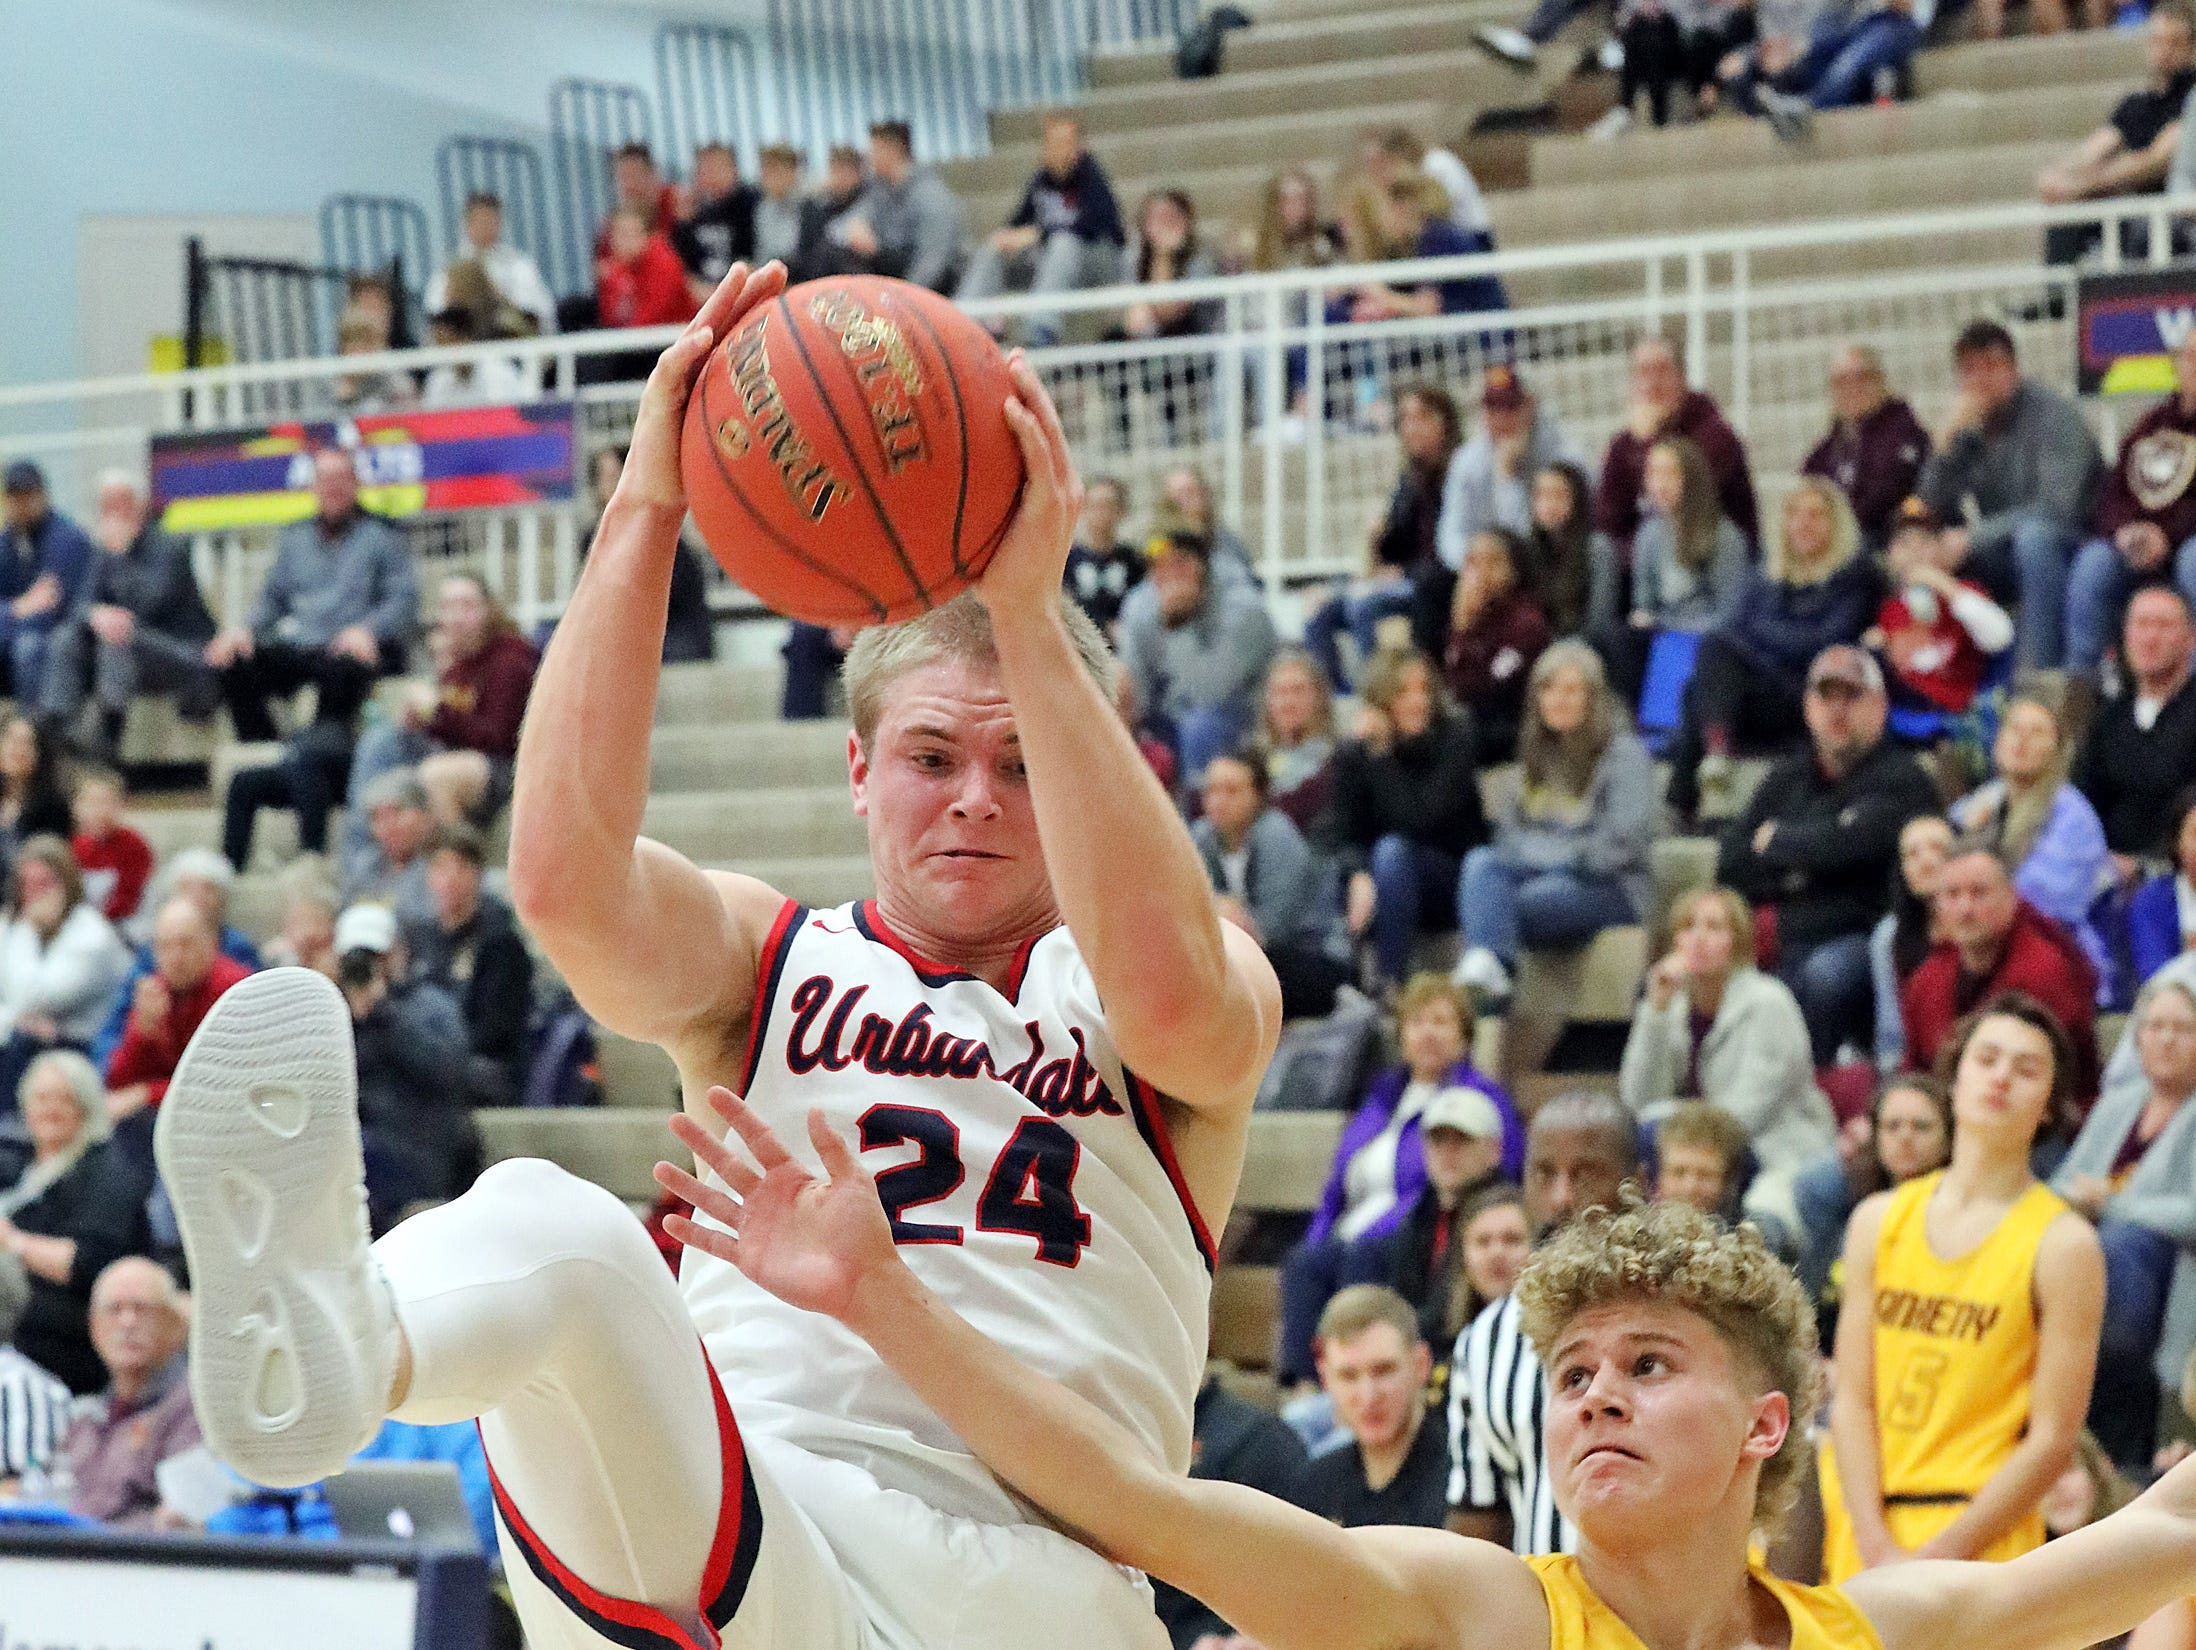 Urbandale senior guard Will Pattison pulls down the rebound before Ankeny junior Jordan Kumm as the Ankeny Hawks compete against the Urbandale J-Hawks in high school basketball on Friday, Dec. 14, 2018 at Urbandale High School. Ankeny won 62 to 52 to remain undefeated at 6-0.